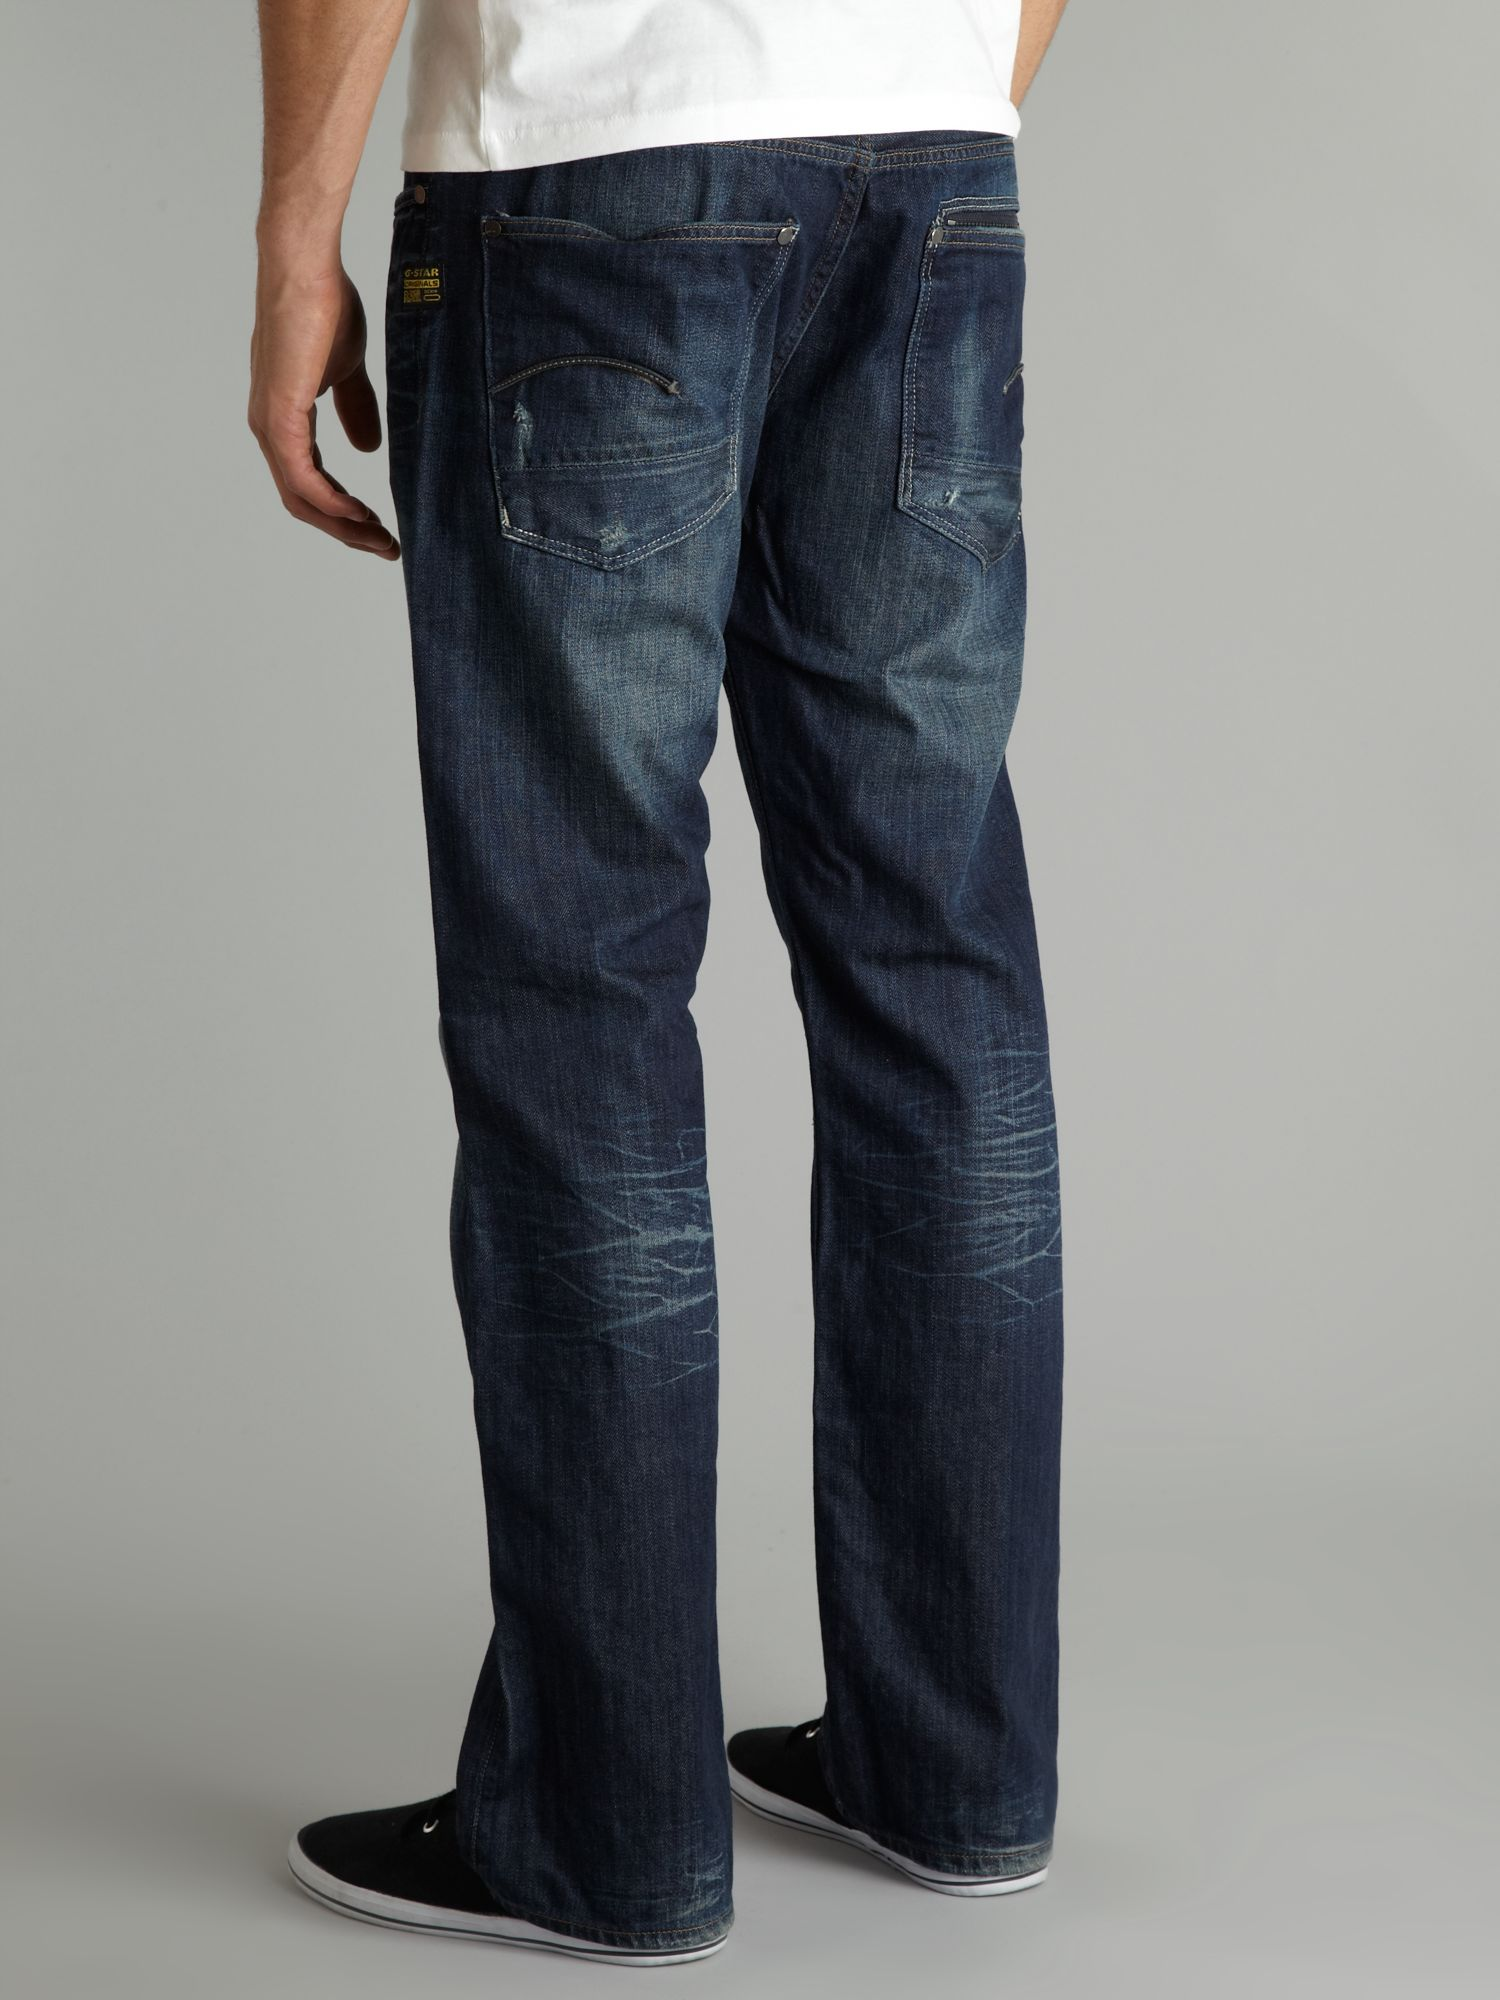 g star raw attacc straight denim jeans in blue for men lyst. Black Bedroom Furniture Sets. Home Design Ideas